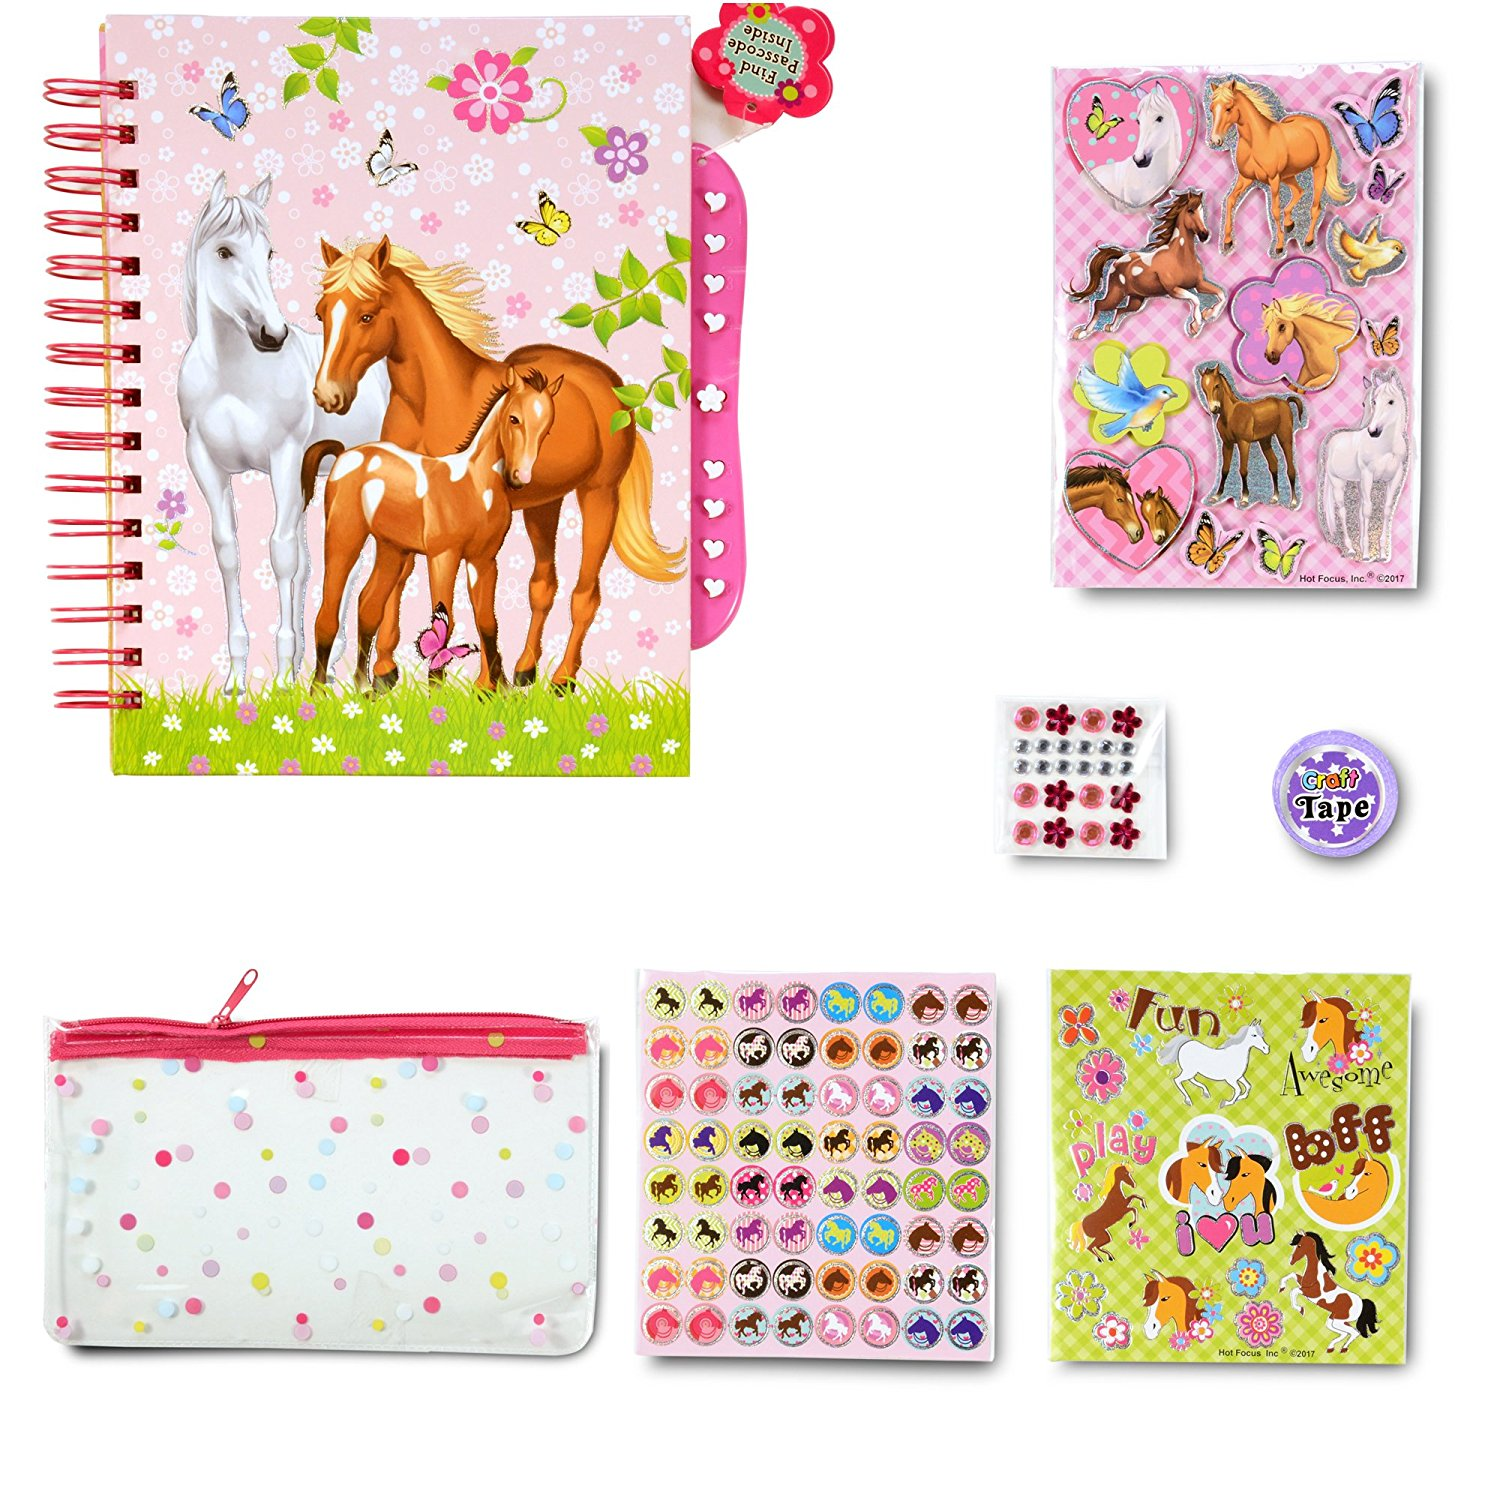 Missys product reviews scented secret scrapbook from smit co usfg my opinion i do think this is a great set for anybody who is a horse lover as all the stickers are horse themed and the passcode diary is perfect to write negle Gallery